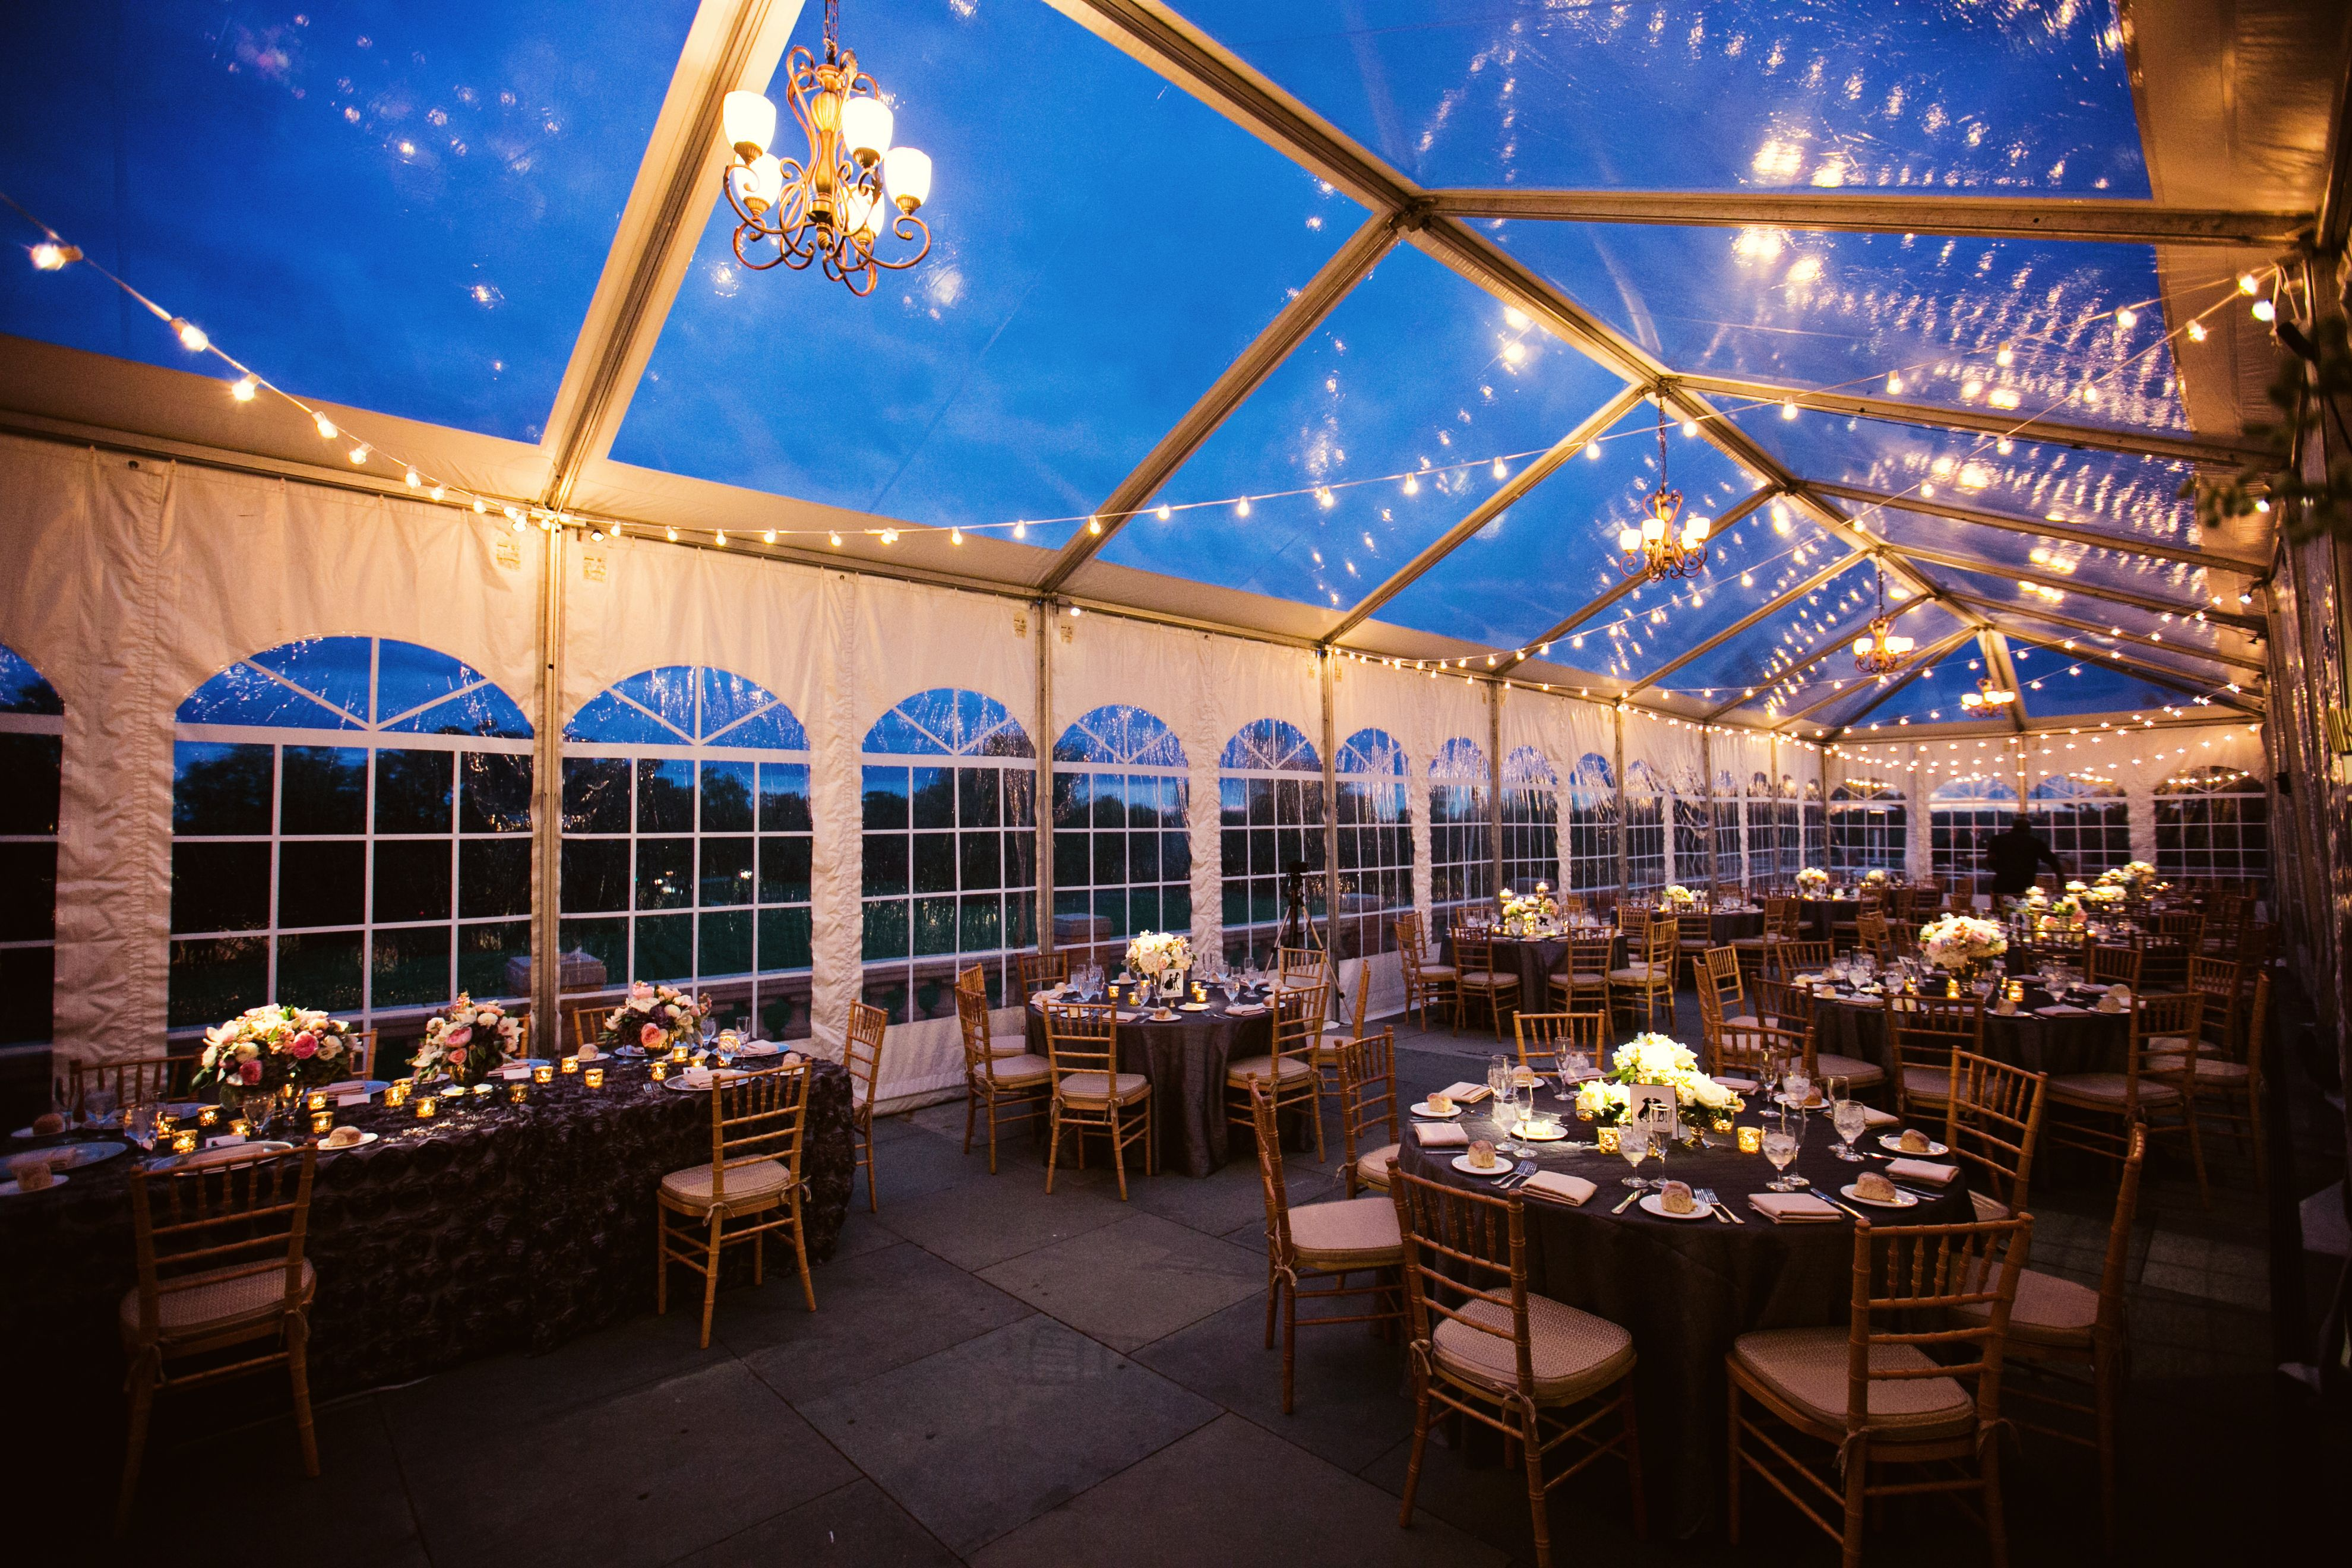 Italian cafe bistro string lighting in a clear-top tent as well as pin & Italian cafe bistro string lighting in a clear-top tent as well ...